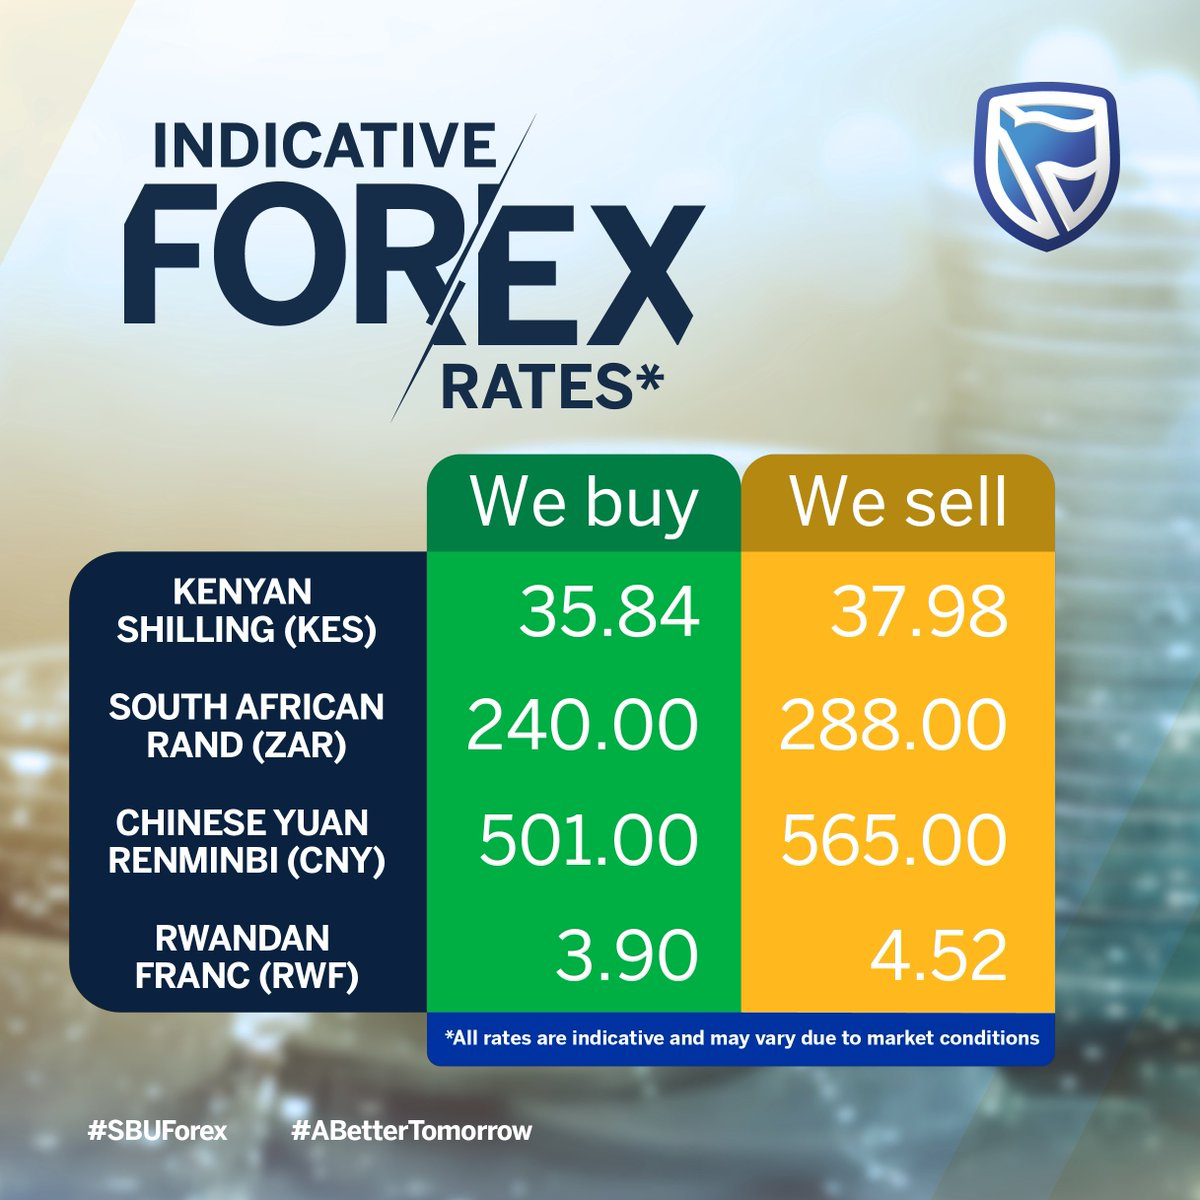 What are the trusted Forex brokers in Uganda? Read this guide to learn